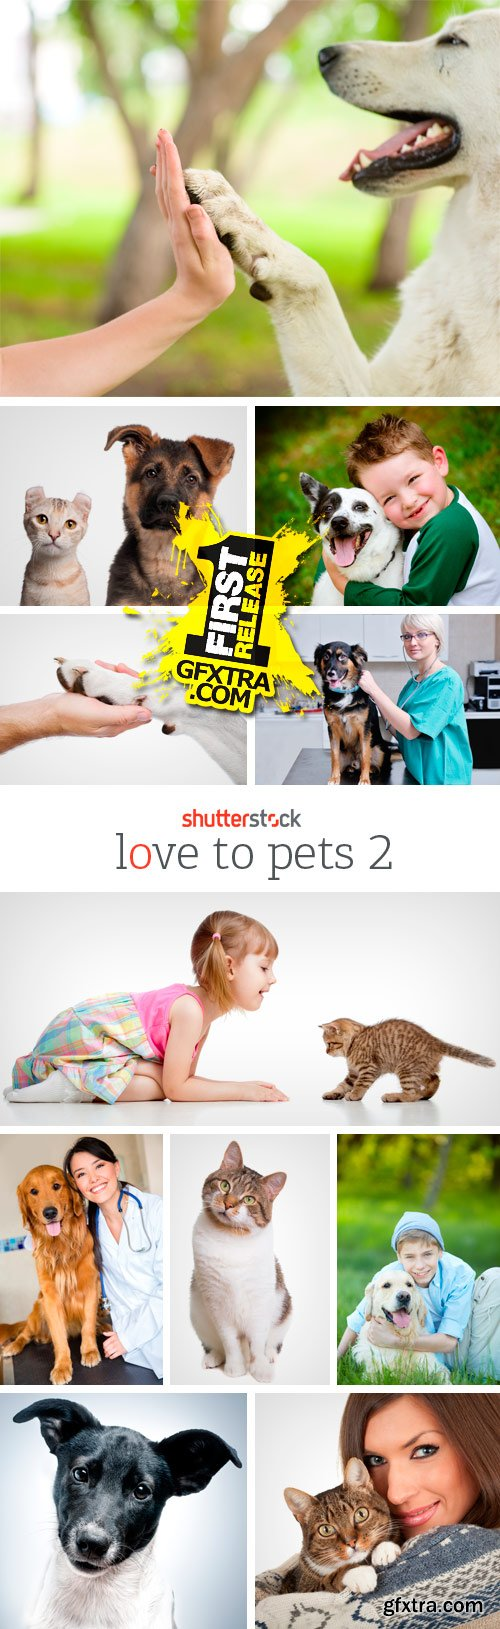 Amazing SS - Love To Pets 2, 25xJPGs